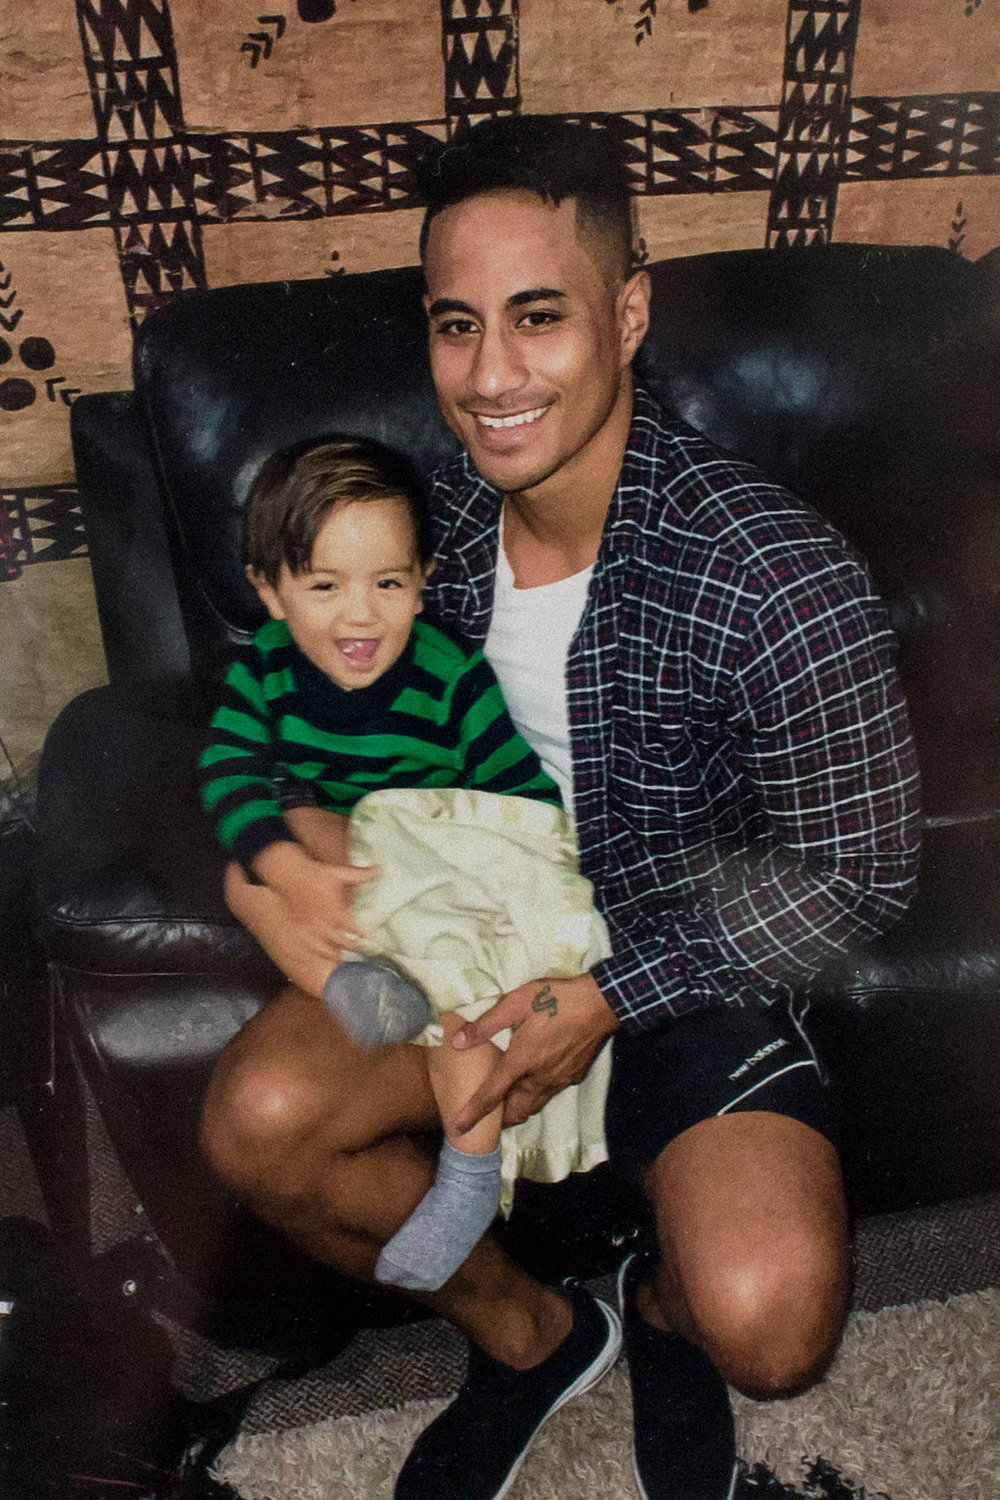 Lafaele Stowers, a New Zealand citizen originally from Samoa, with one of his three children. Mr. Stowers has been in a Sydney detention center for more than a year while appealing the cancellation of his visa.